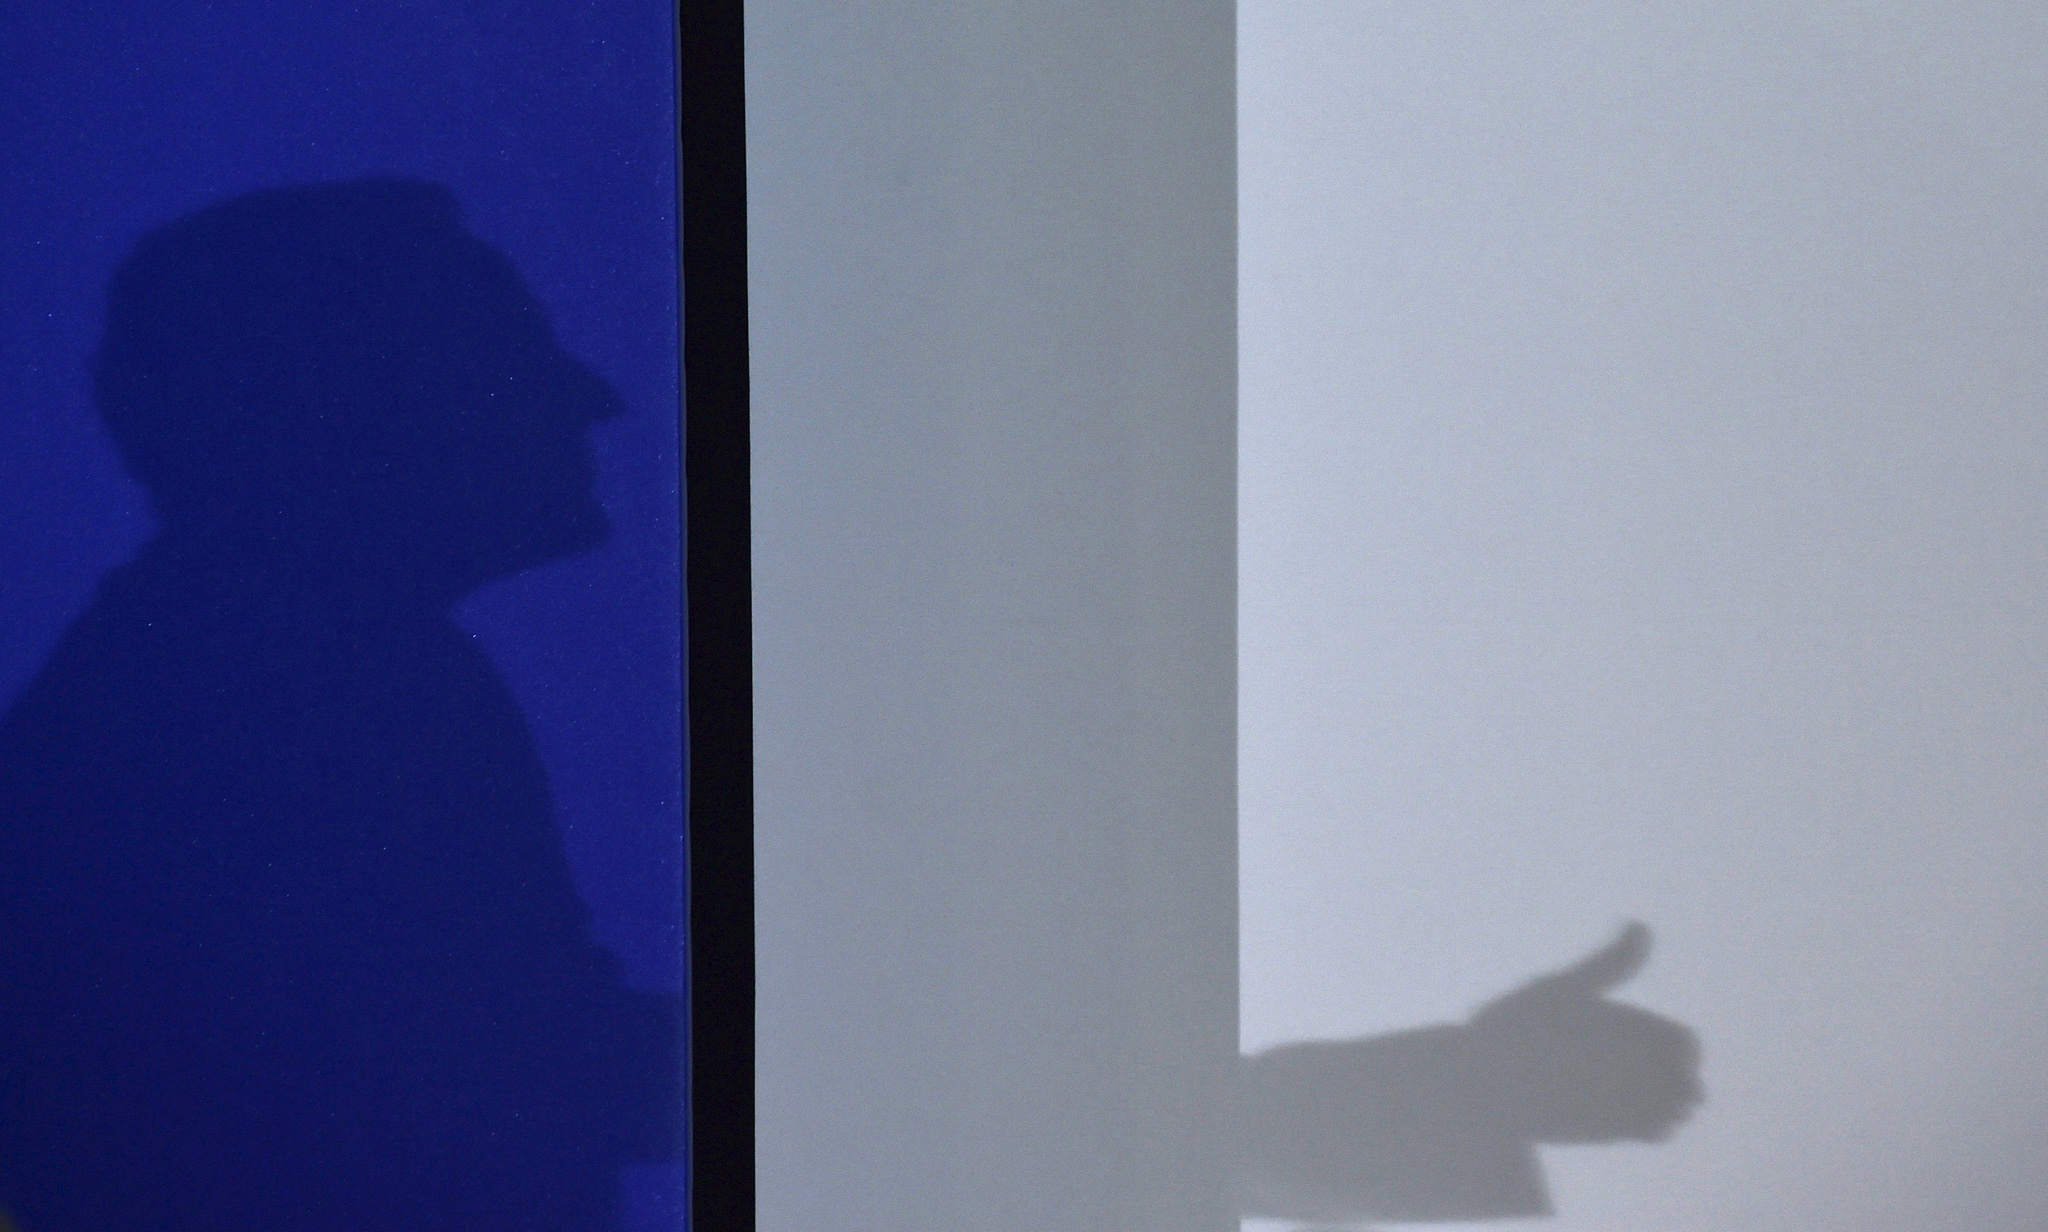 The shadow of Britain's Prime Minister Cameron is cast on a screen as he delivers a speech in a garden shed warehouse during a campaign event in Bedford, southern...The shadow of Britain's Prime Minister David Cameron is cast on a screen as he delivers a speech in a garden shed warehouse during a campaign event in Bedford, southern England April 22, 2015.  REUTERS/Toby Melville